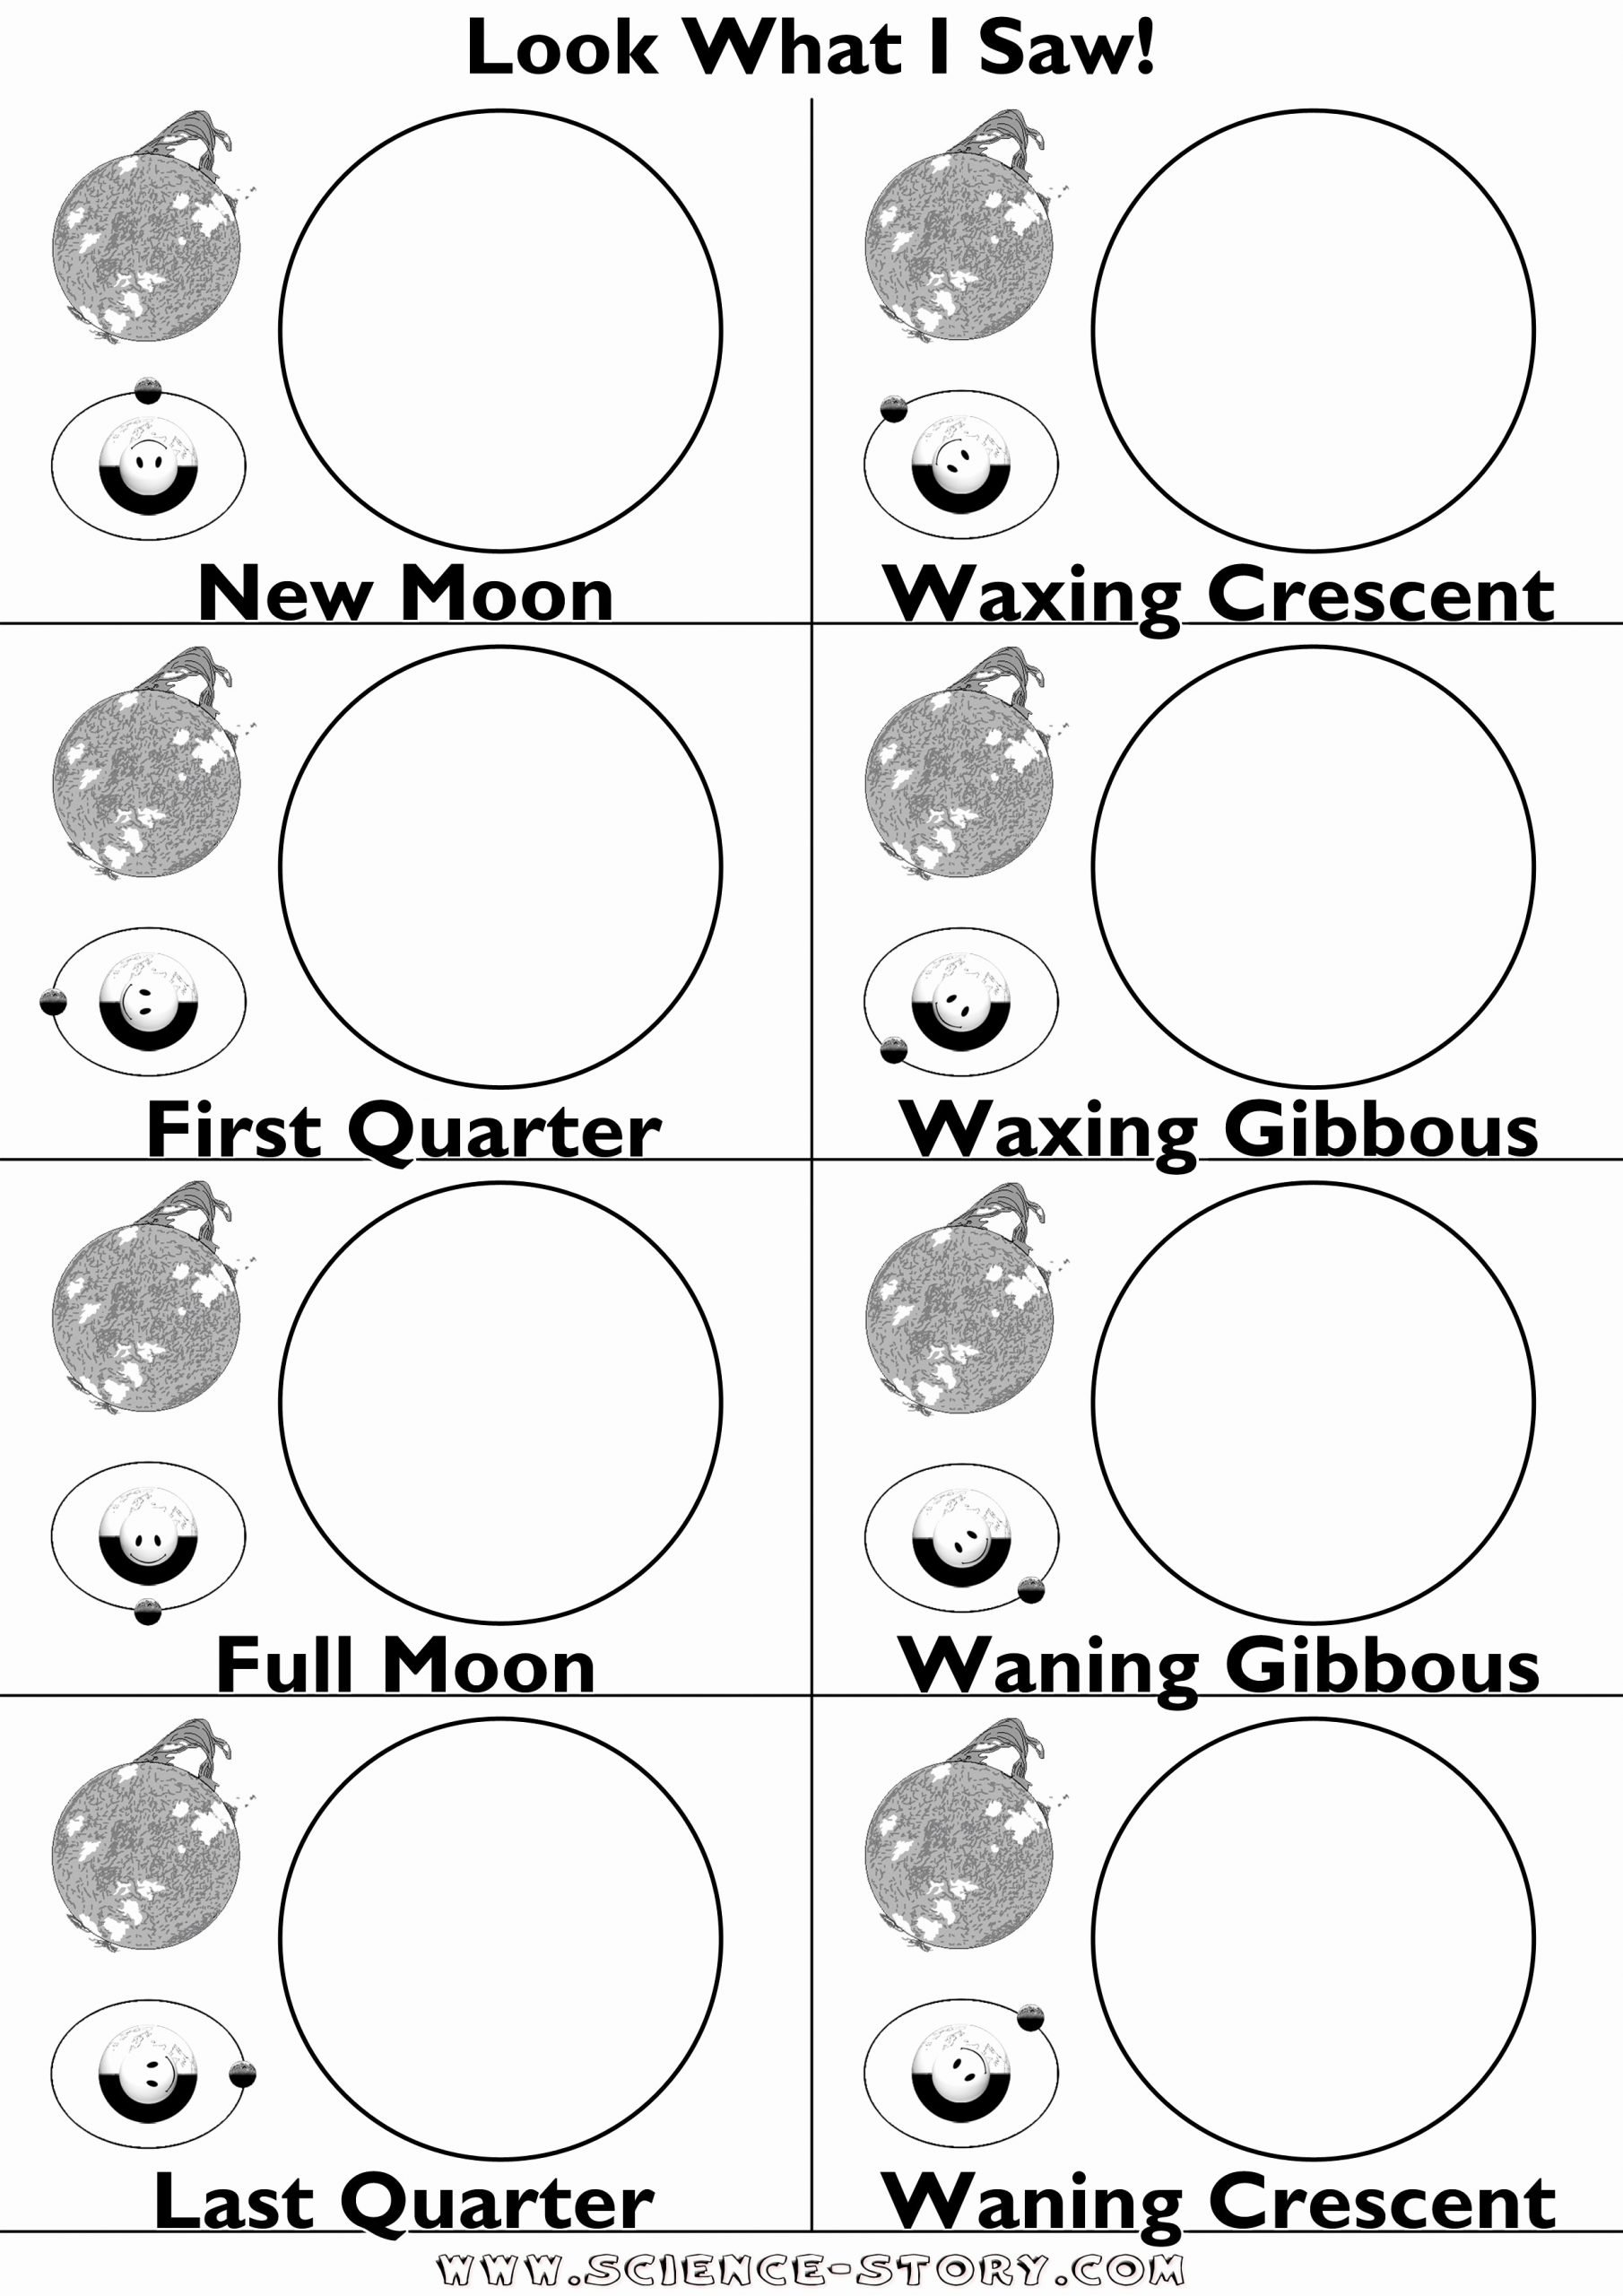 Moon Phases Worksheet 4th Grade Inspirational Phases the Moon with oreos Worksheet